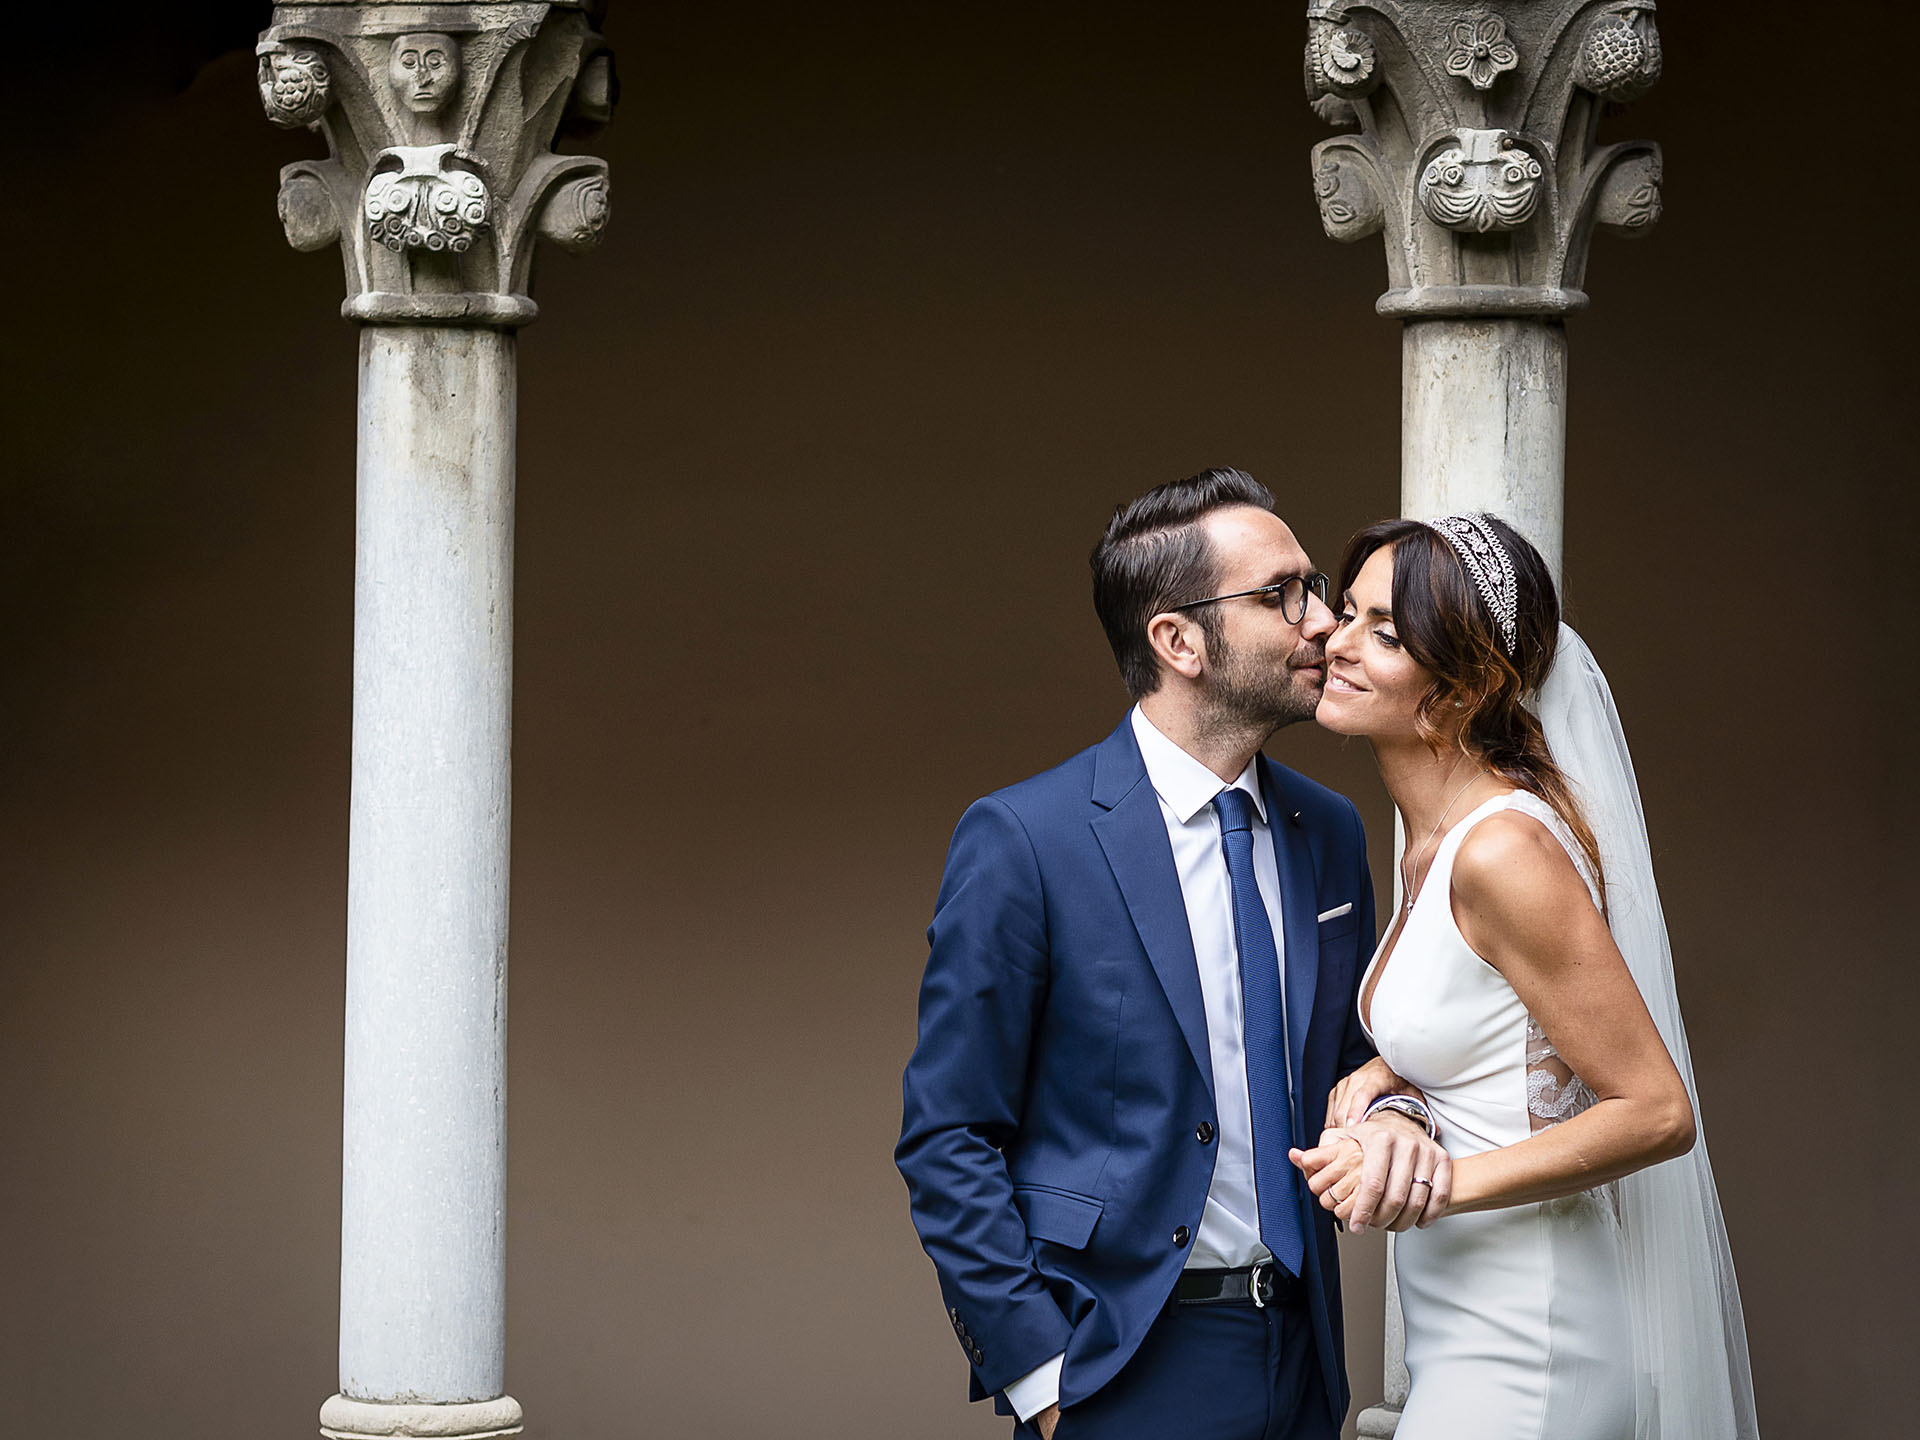 Wedding photographer - Como Lake